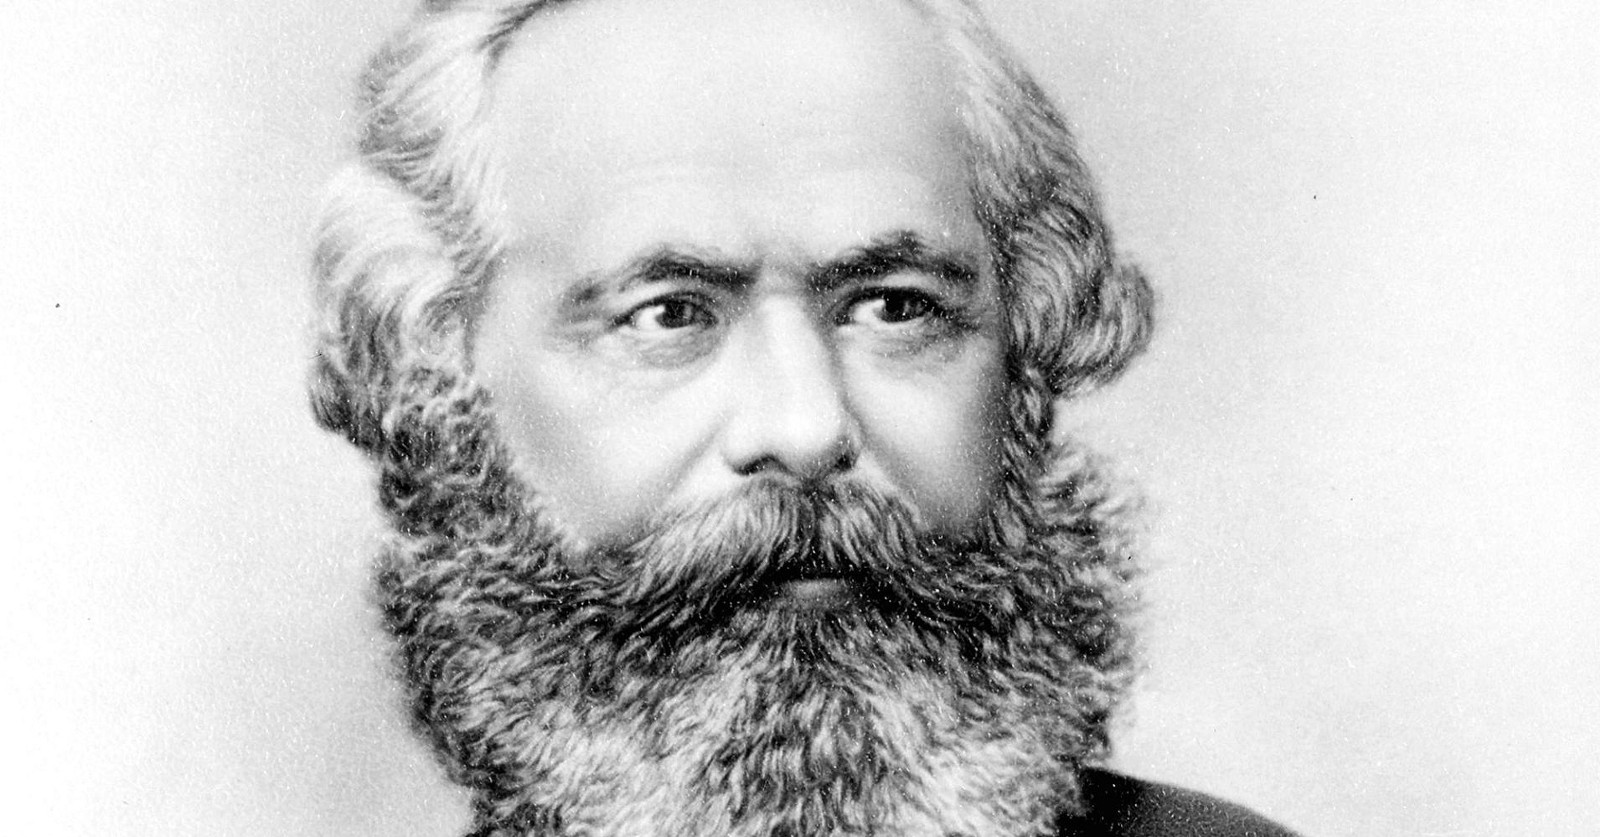 a biography of karl marx one of the most influential philosophers and revolutionaries of his time The ideas of marx have never been more relevant than they are today this is reflected in the thirst broadly speaking, his ideas can be split into three distinct yet interconnected parts—what lenin at the time when marx and engels were writing, the world of the big multinational companies was still.